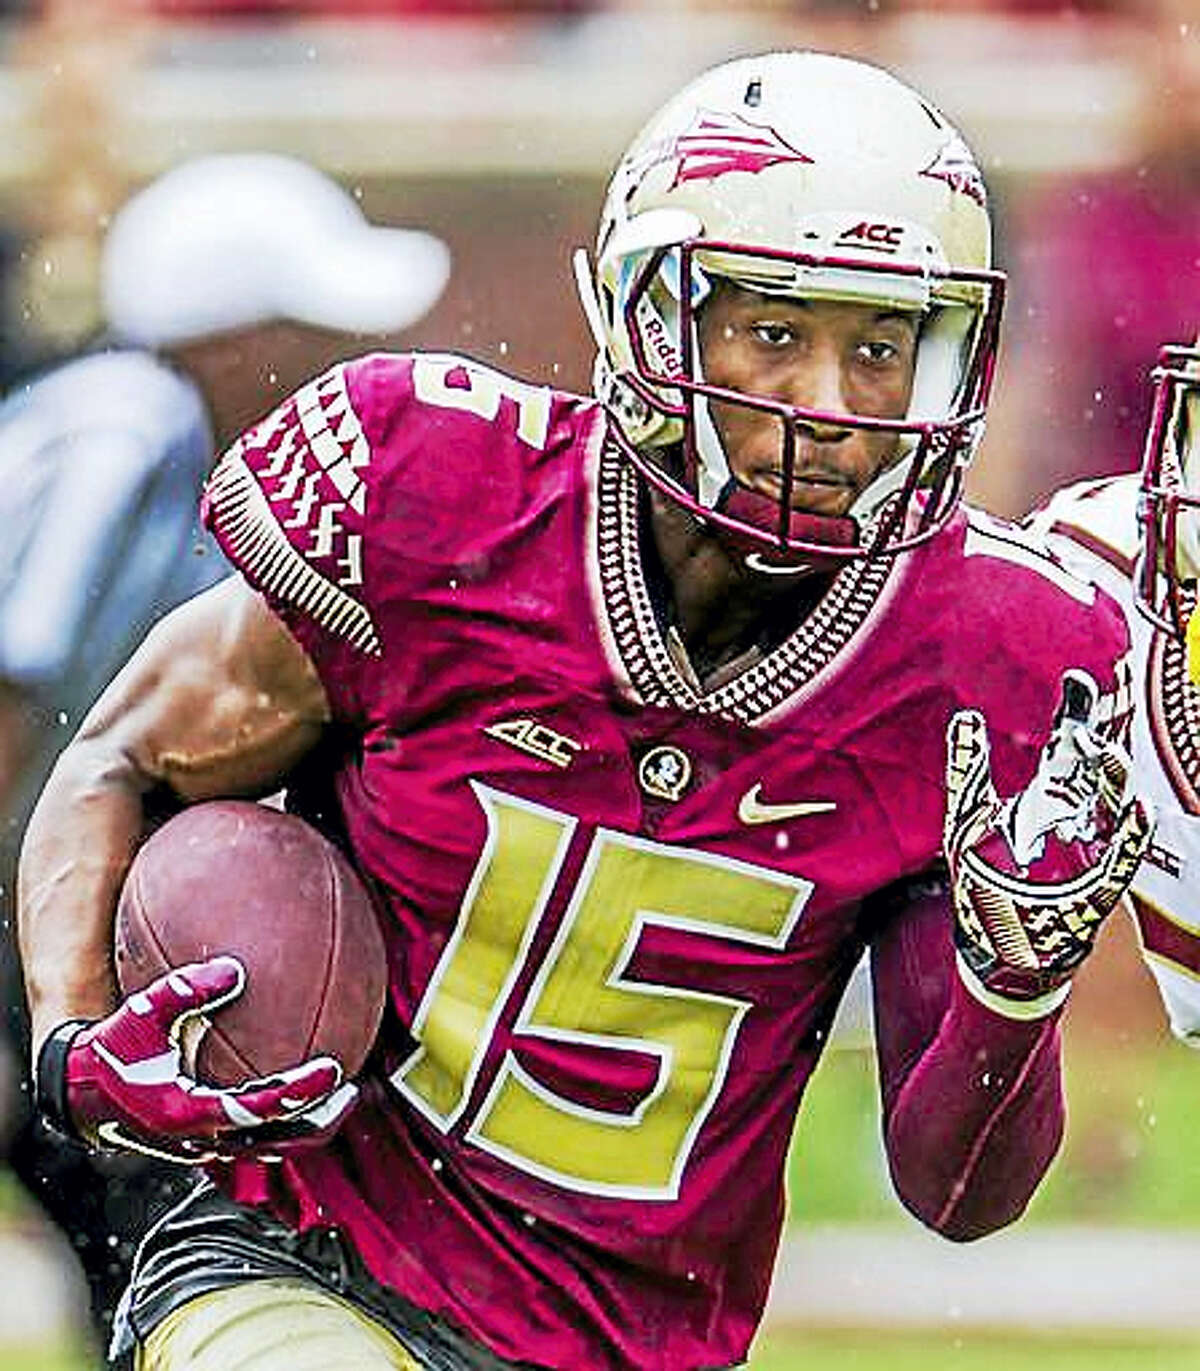 """In this April 11, 2015, file photo, Florida State wide receiver Travis Rudolph run in the first half of the Florida State Garnet & Gold spring college football game in Tallahassee, Fla. A small gesture of kindness by Florida State University wide receiver Travis Rudolph — captured in a photo and shared on Facebook — had tears streaming down the face of the sixth-grader's mother, Leah Paske. """"I'm not sure what exactly made this incredibly kind man share a lunch table with my son, but I'm happy to say it will not soon be forgotten,"""" she wrote."""